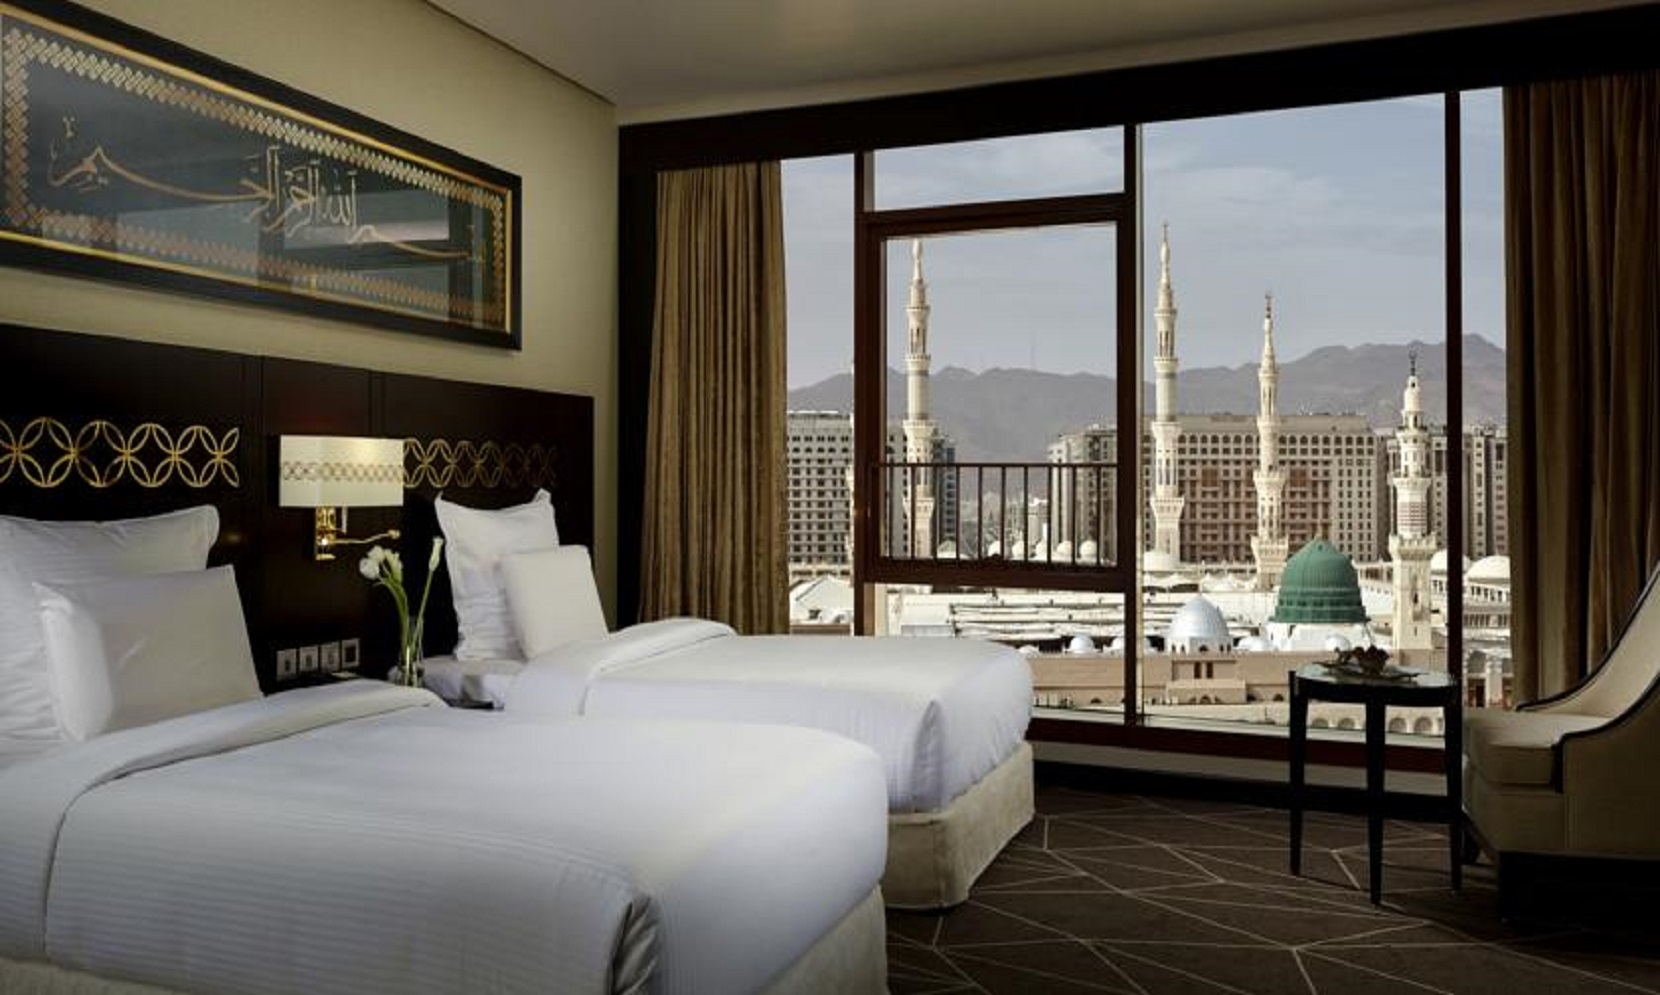 5* Hotels with Breakfast - Makkah 5 Nights: Swissotel Hotel (mere steps away from the Haram, next to the famous Clock Tower)Madinah 4 Nights: Pullman ZamZam (steps away from Bab al Salaam)